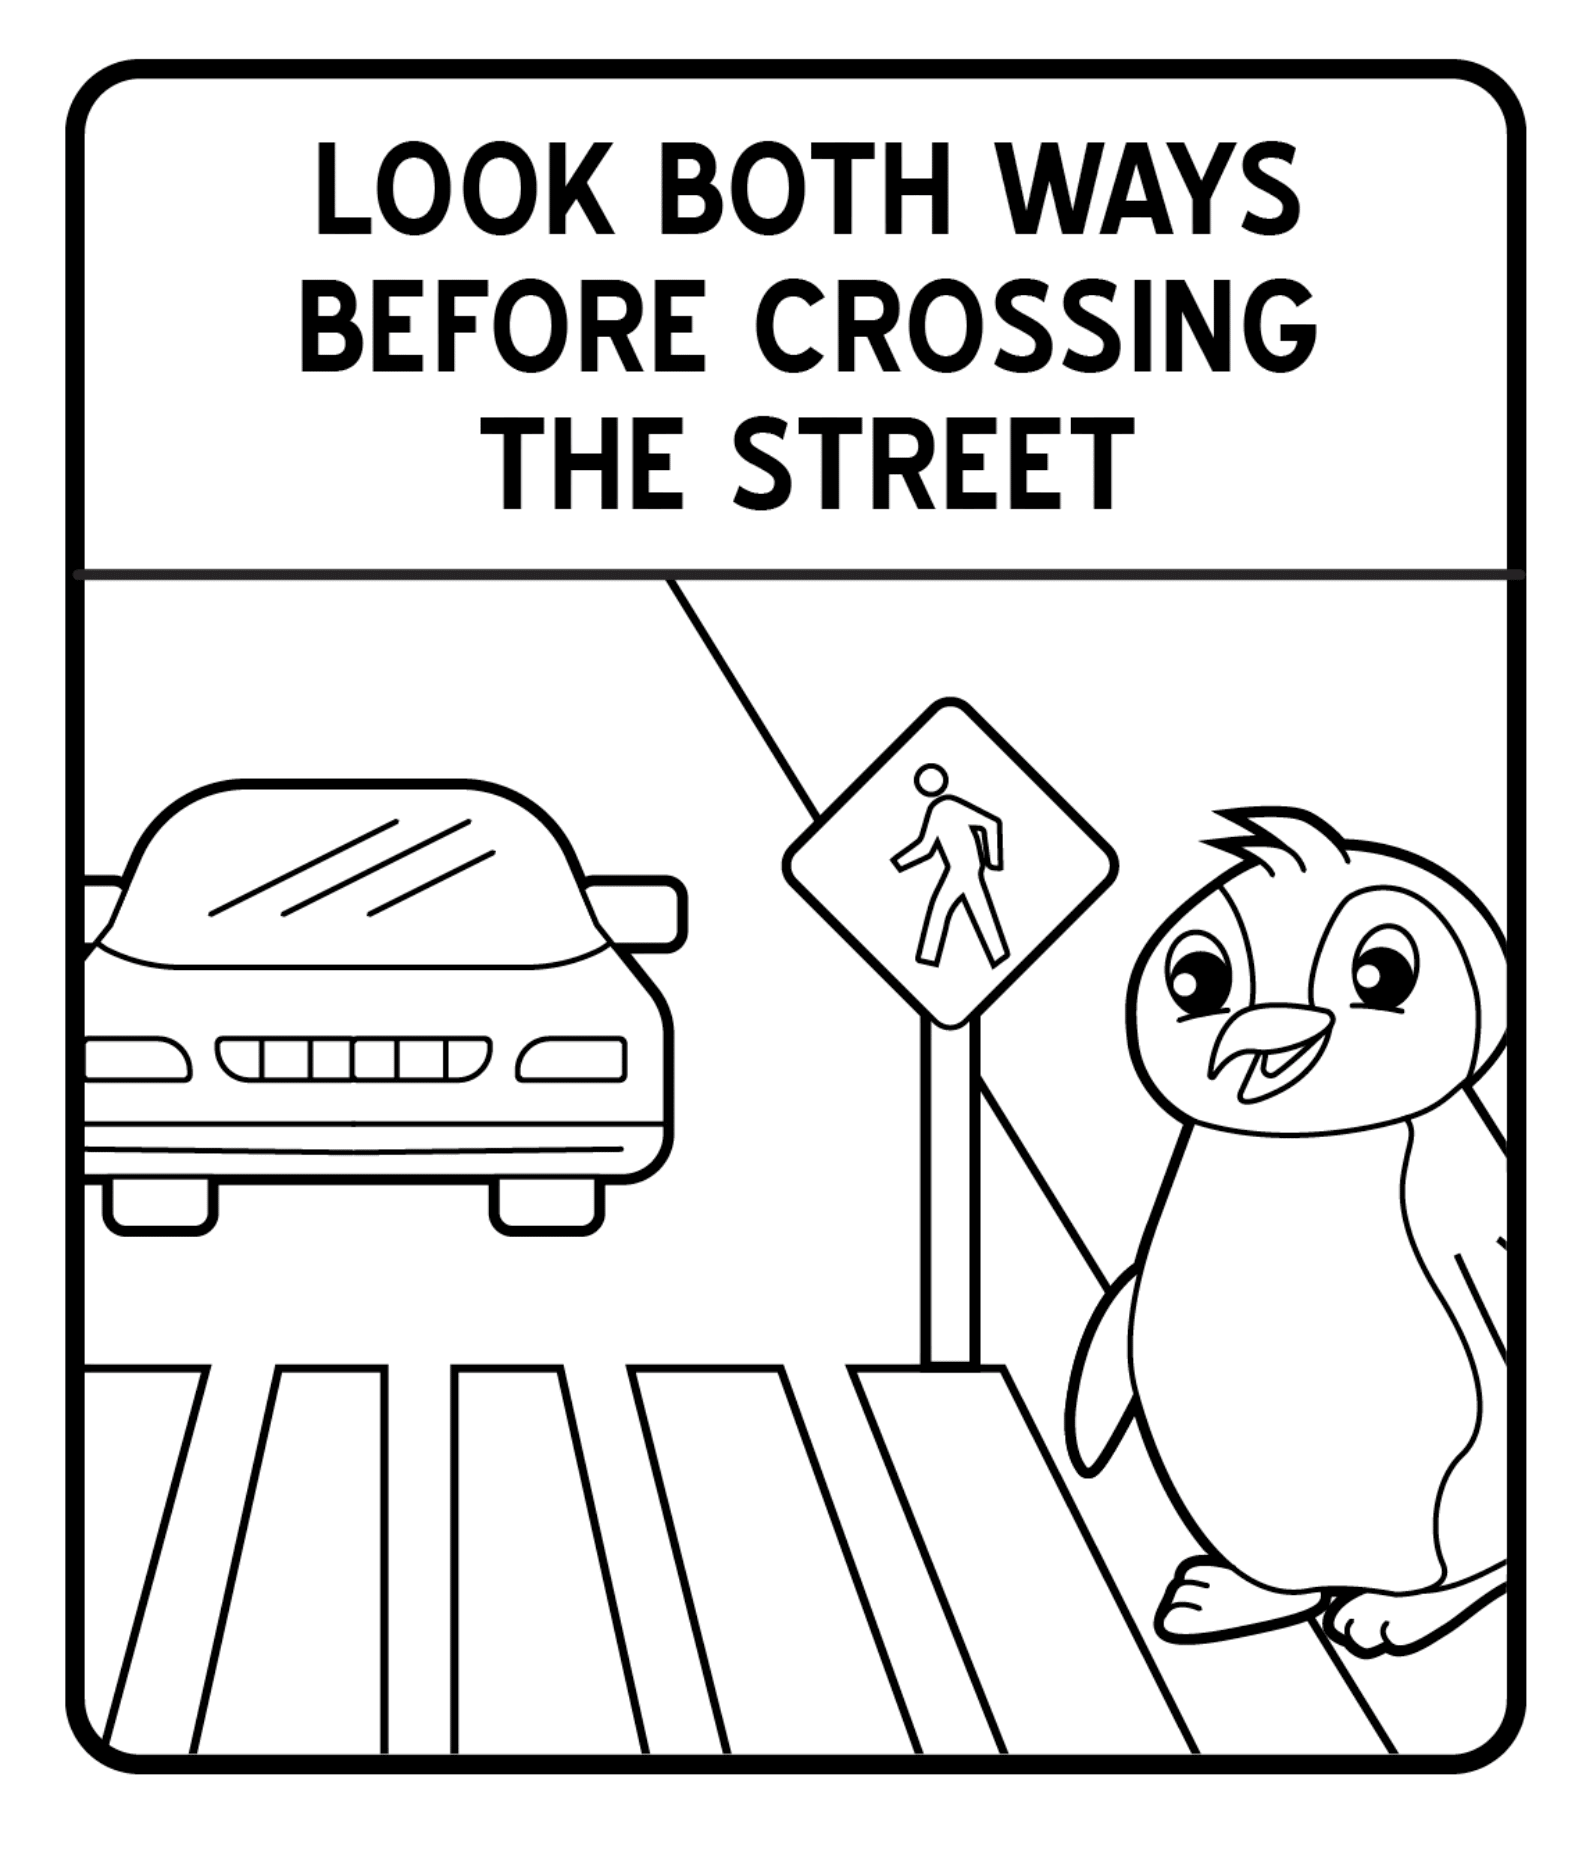 printable traffic signs coloring pages stop sign coloring page from traffic signs category traffic signs pages coloring printable